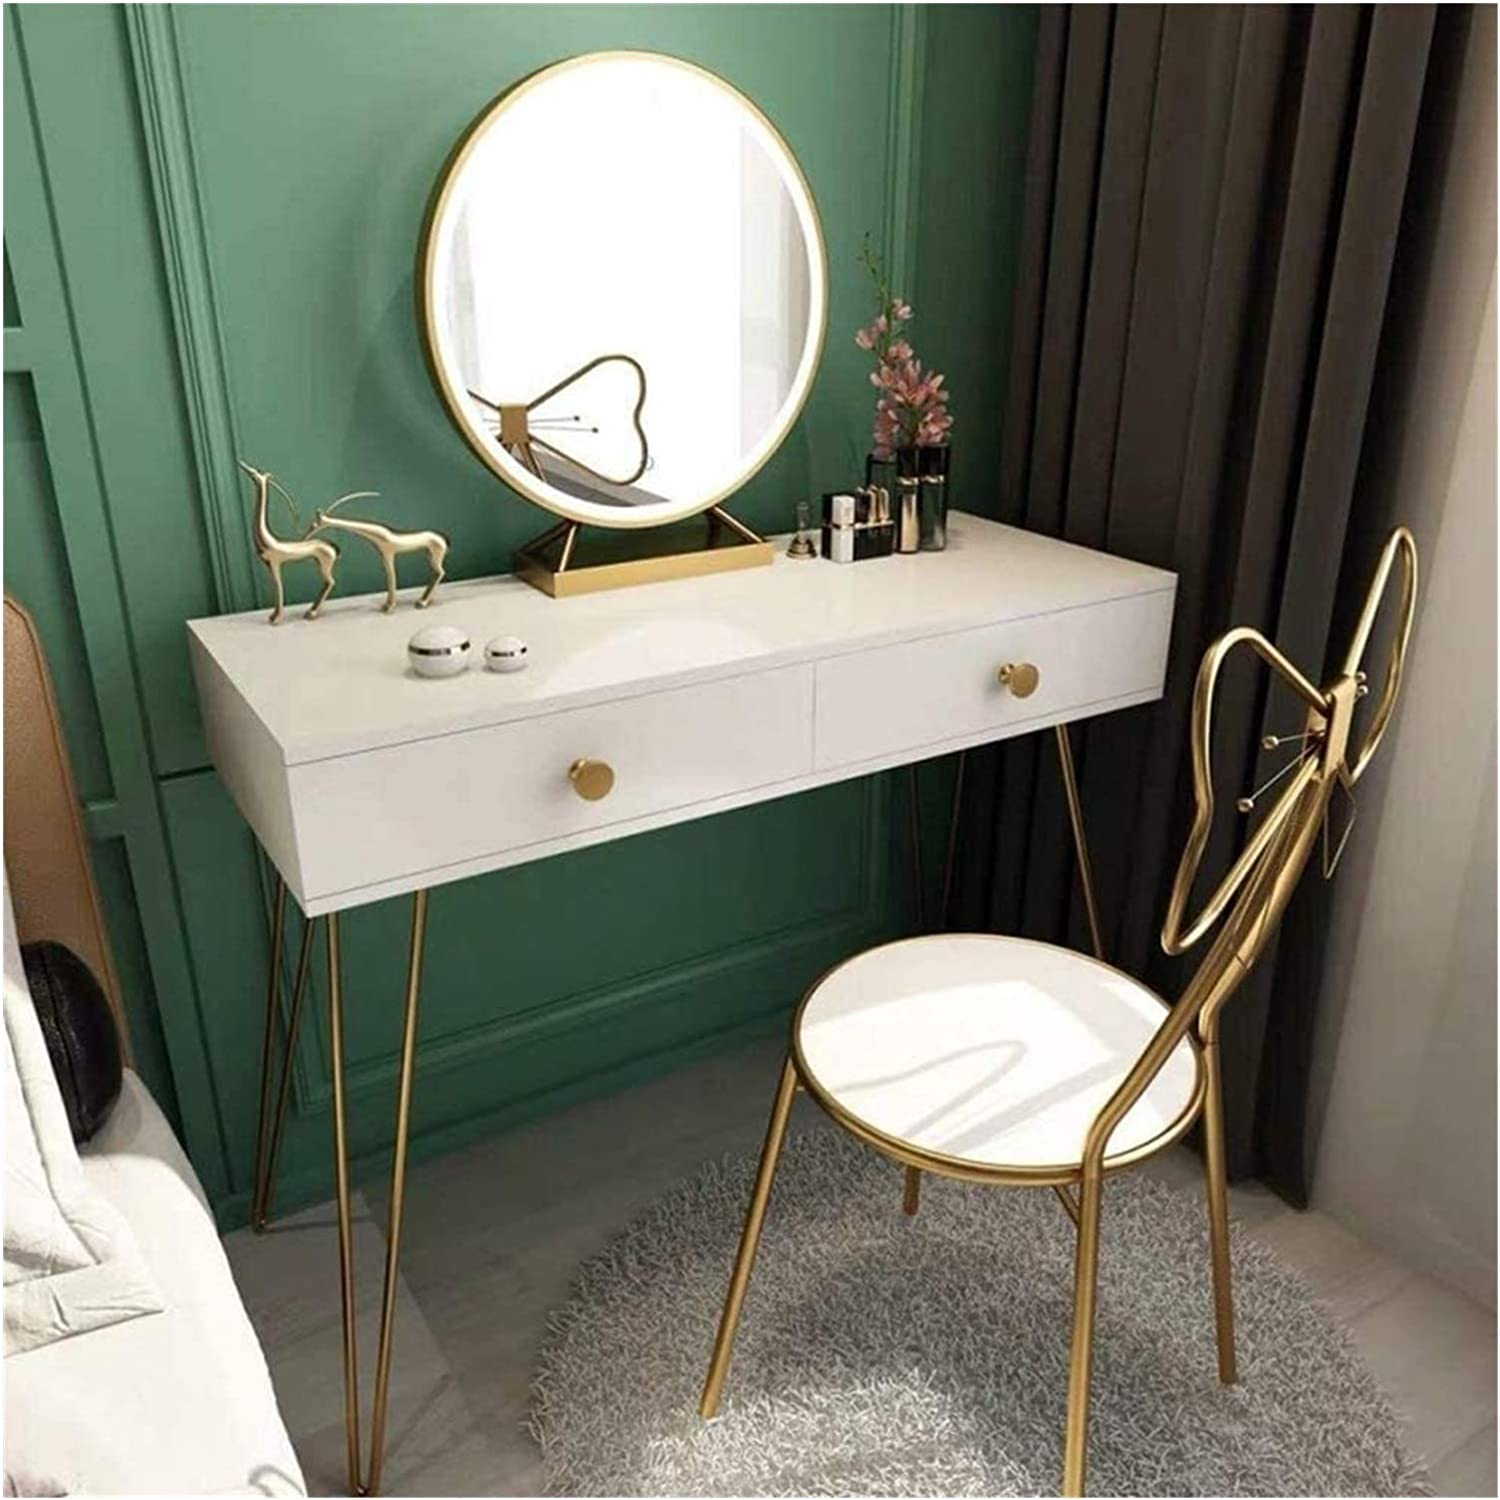 Best Free shipping on posting reviews Design Vanity Benches Nordic Modern Bedroom Table Dressing Bargain